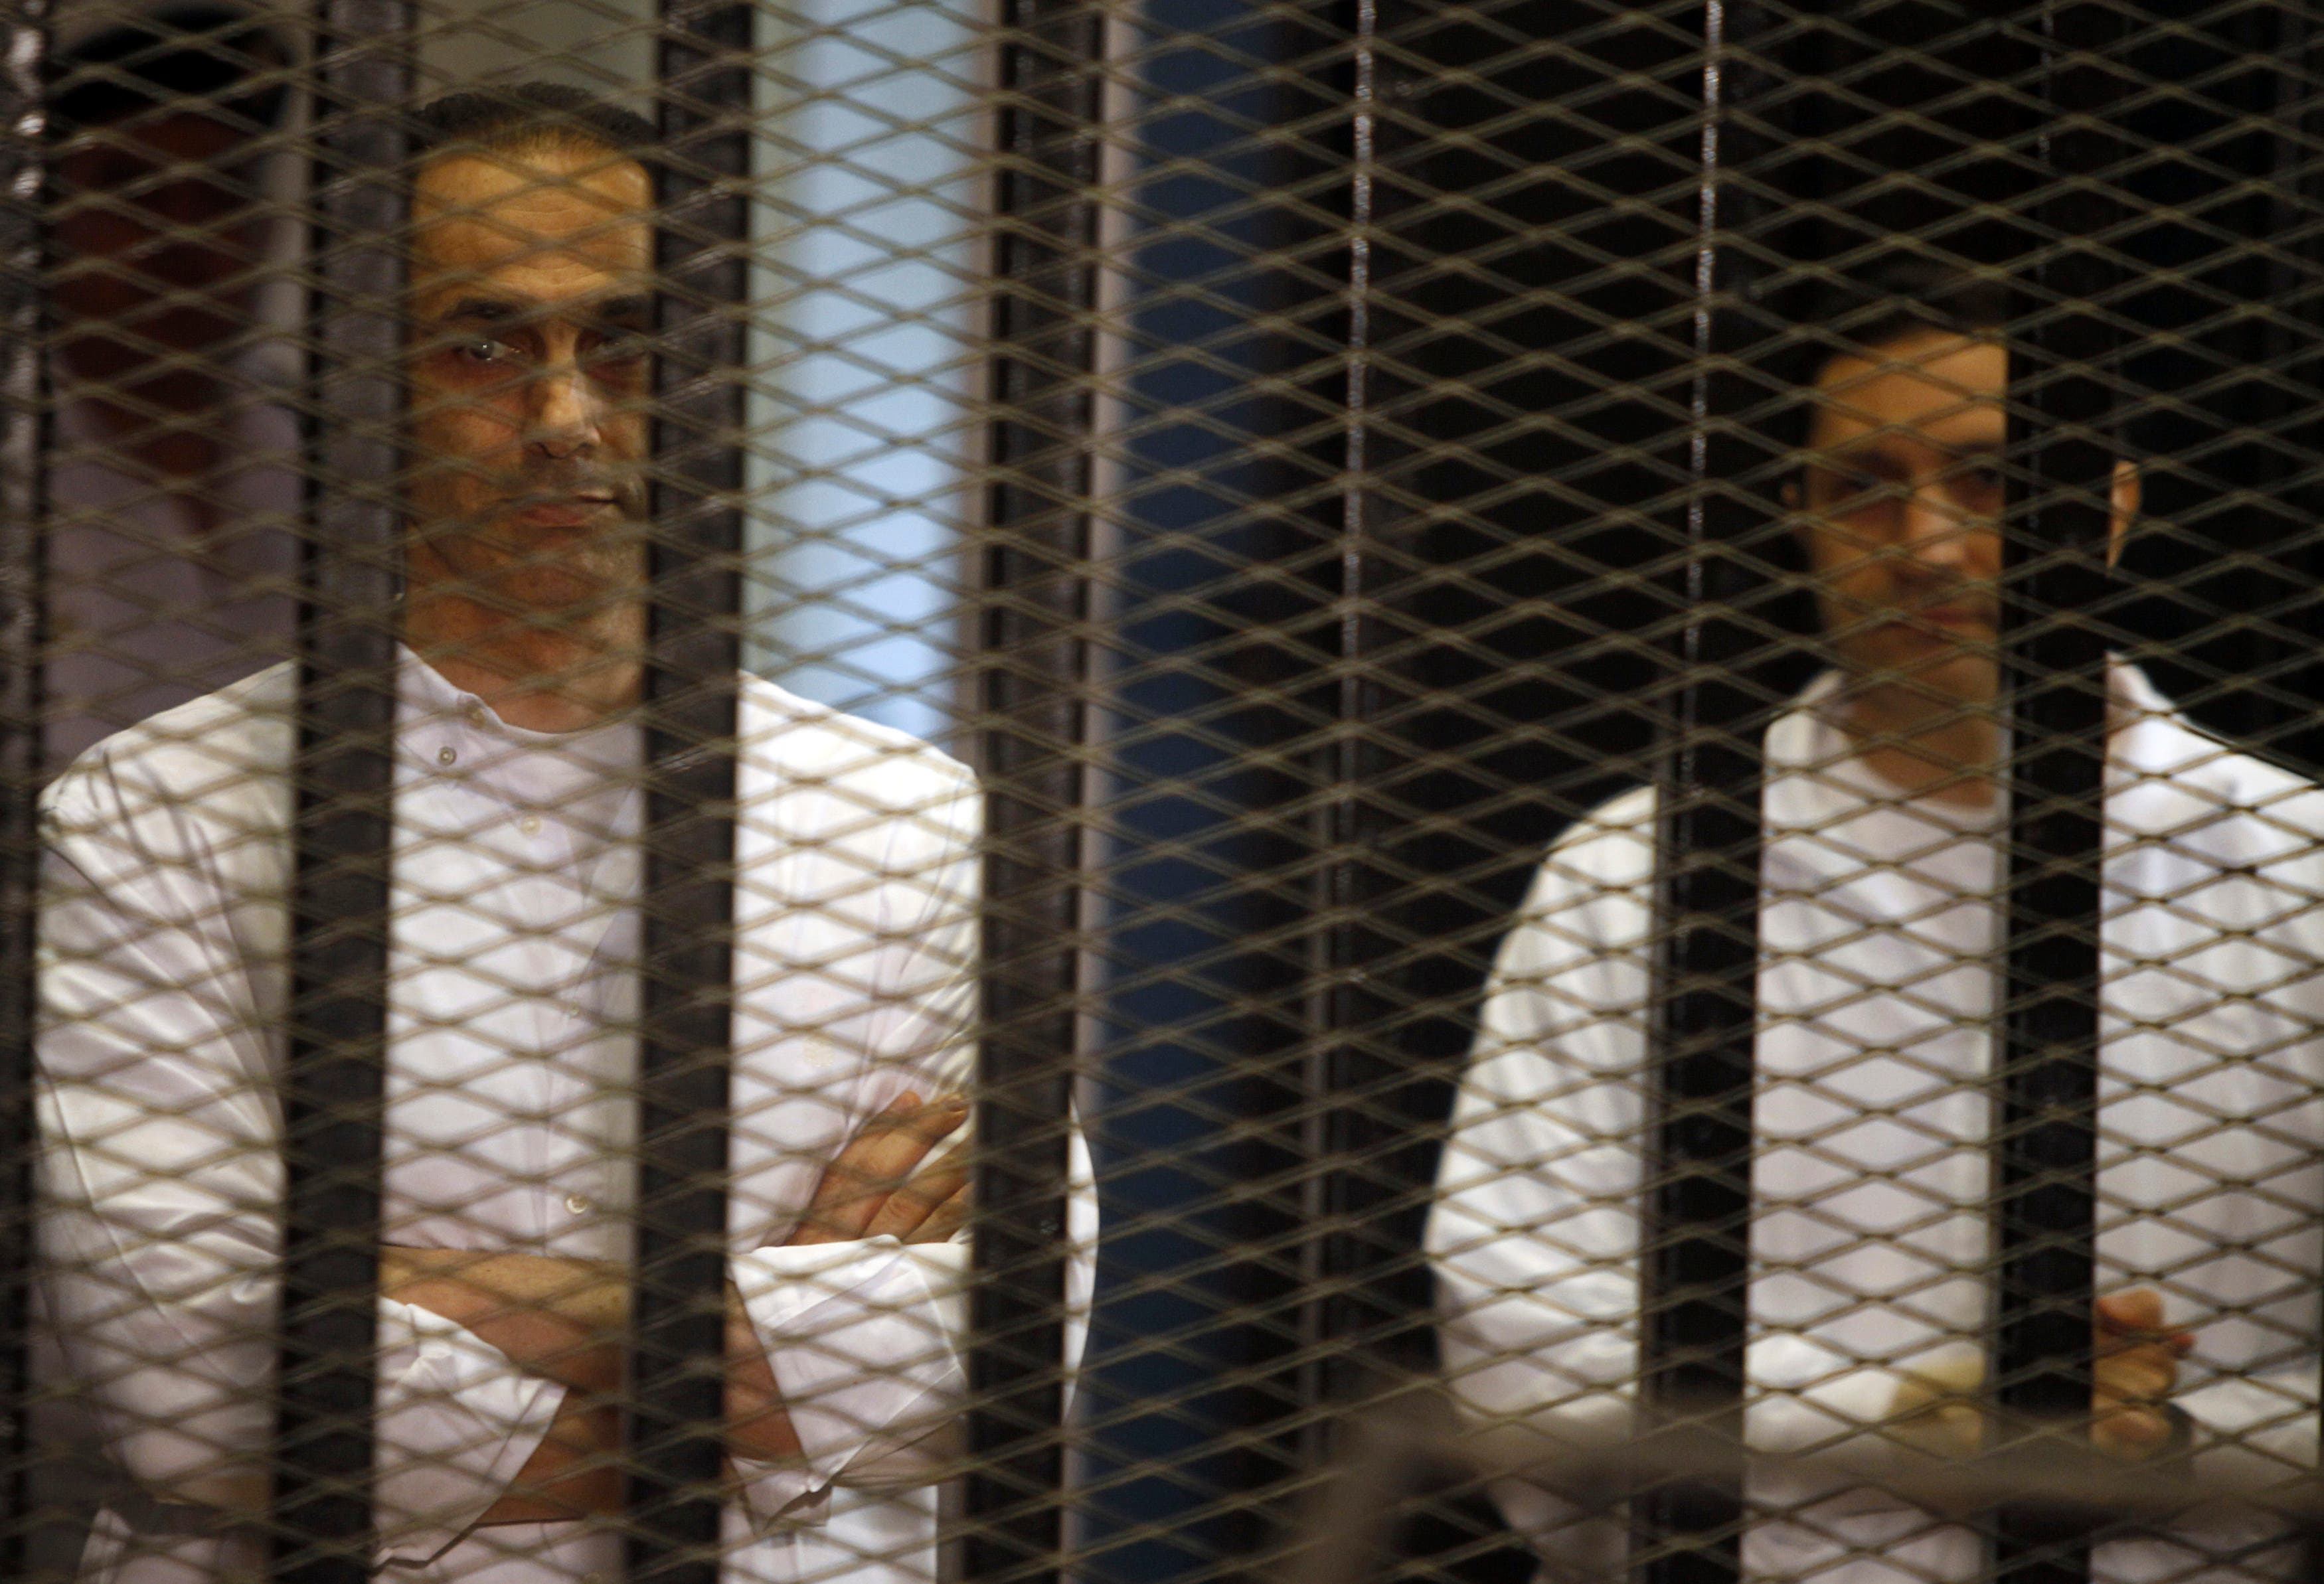 Gamal (L) and Alaa Mubarak, sons of former Egyptian President Hosni Mubarak, stand behind bars during a court trial on June 8, 2013. (File photo: Reuters)